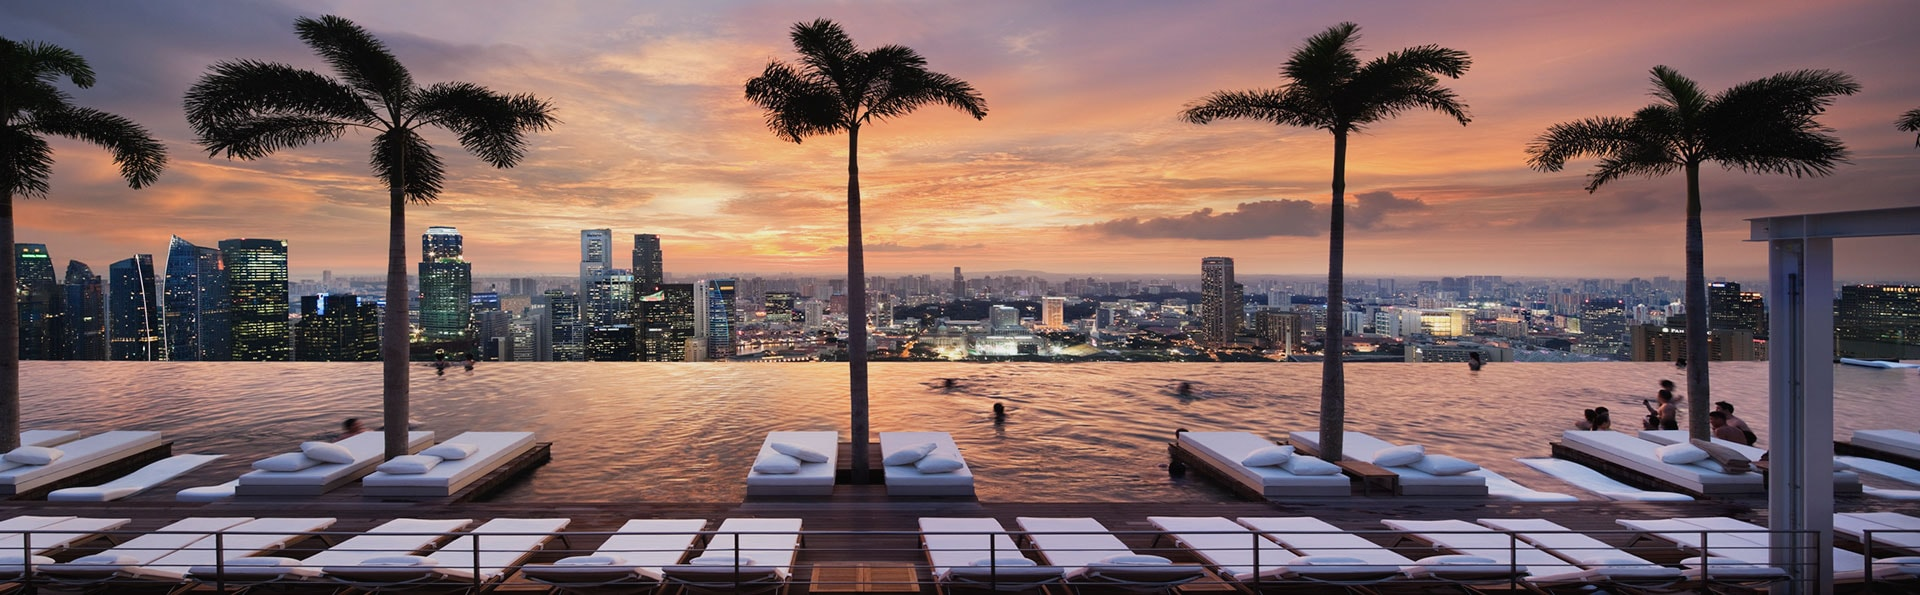 infinity pool singapore. Infinity Pool At Marina Bay Sands Singapore K